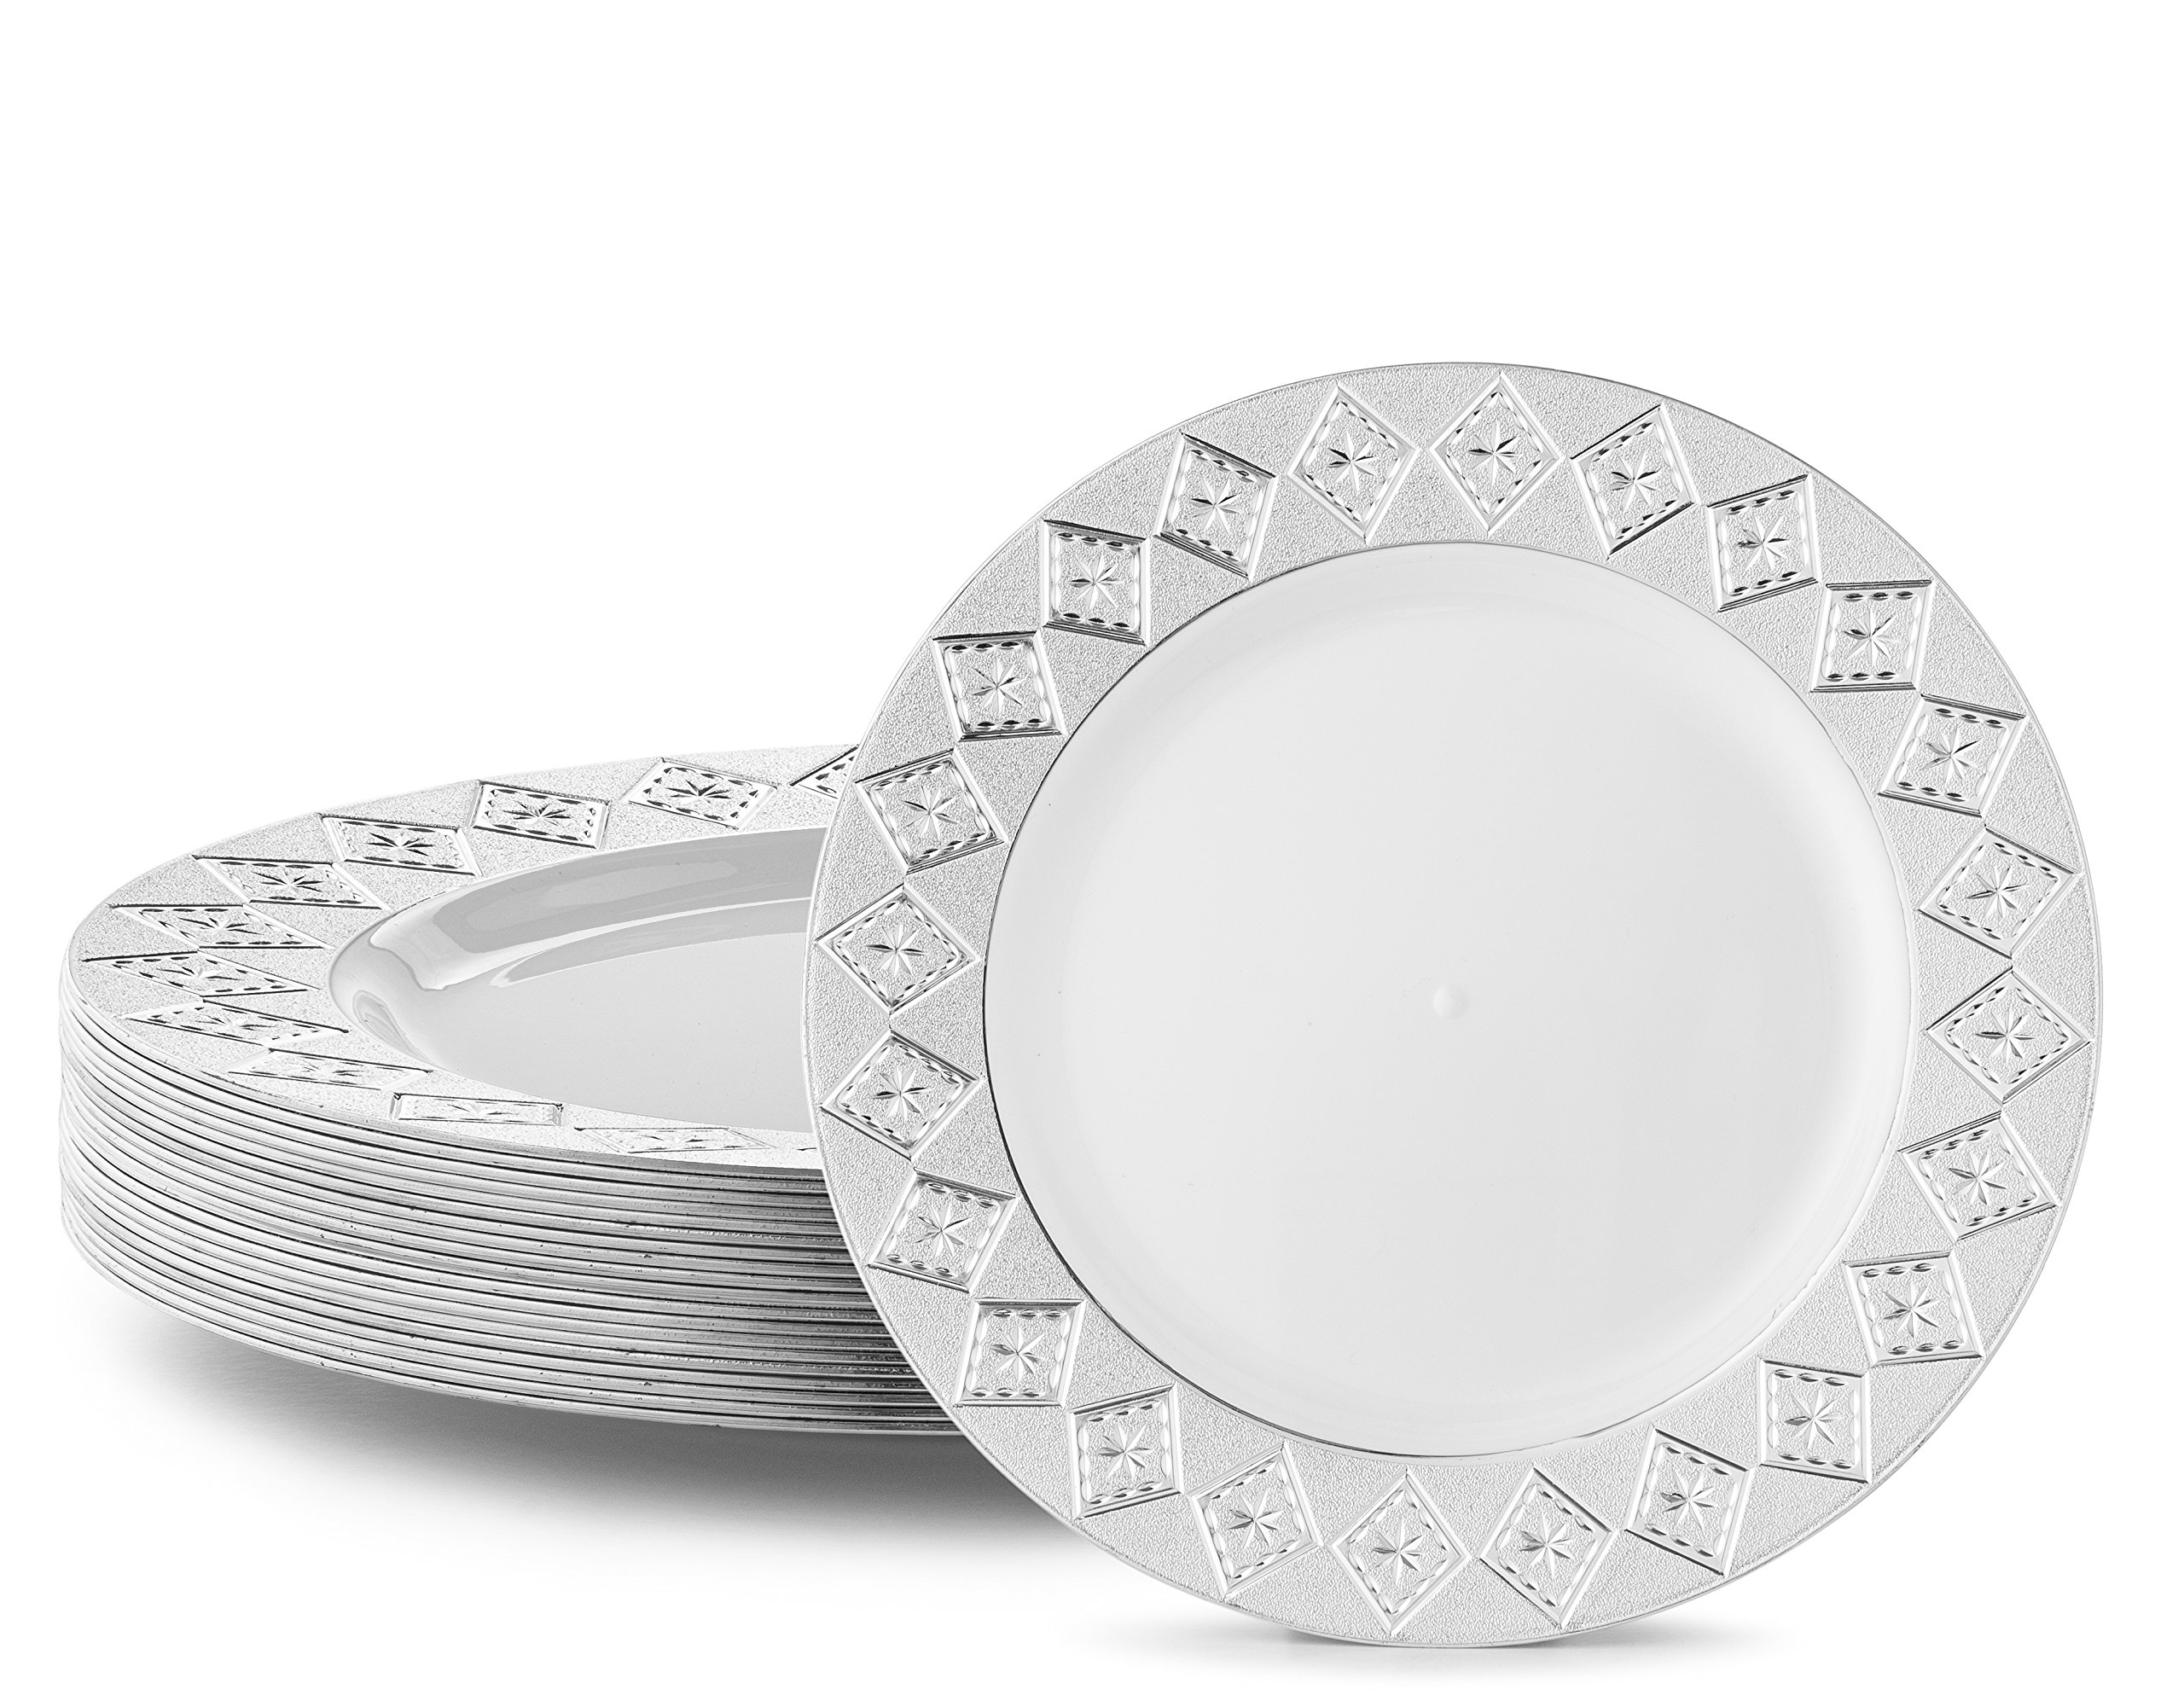 VINTAGE PLASTIC PARTY DISPOSABLE PLATES | 7.5 Inch Hard Round Wedding Appetizer Plates | White with Silver Rim, 40 Pack | Elegant Fancy Heavy Duty Party Supplies Plates for all Holidays Occasions